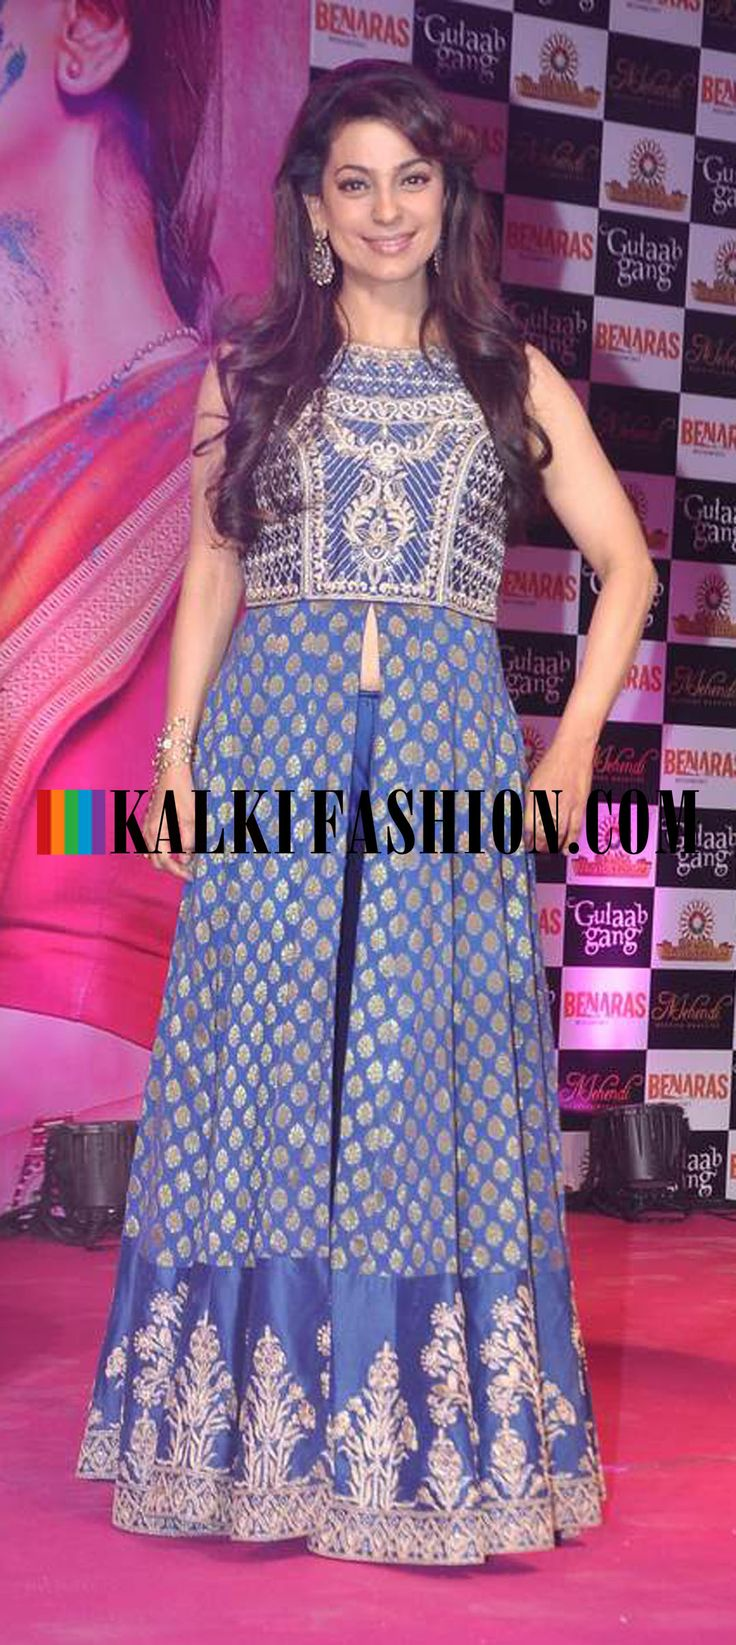 http://www.kalkifashion.com/ Juhi Chawla in Anita Dongre's blue outfit attends the press meet of her upcoming movie Gulab Gang